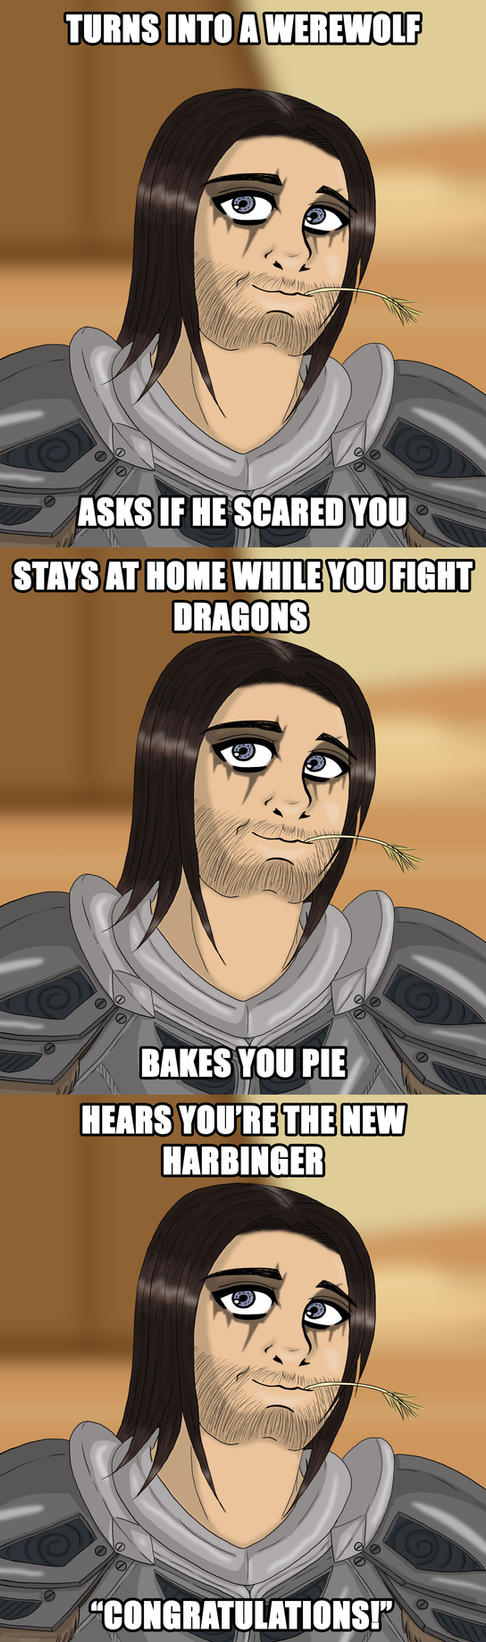 Good Guy Farkas by AirieFeristo